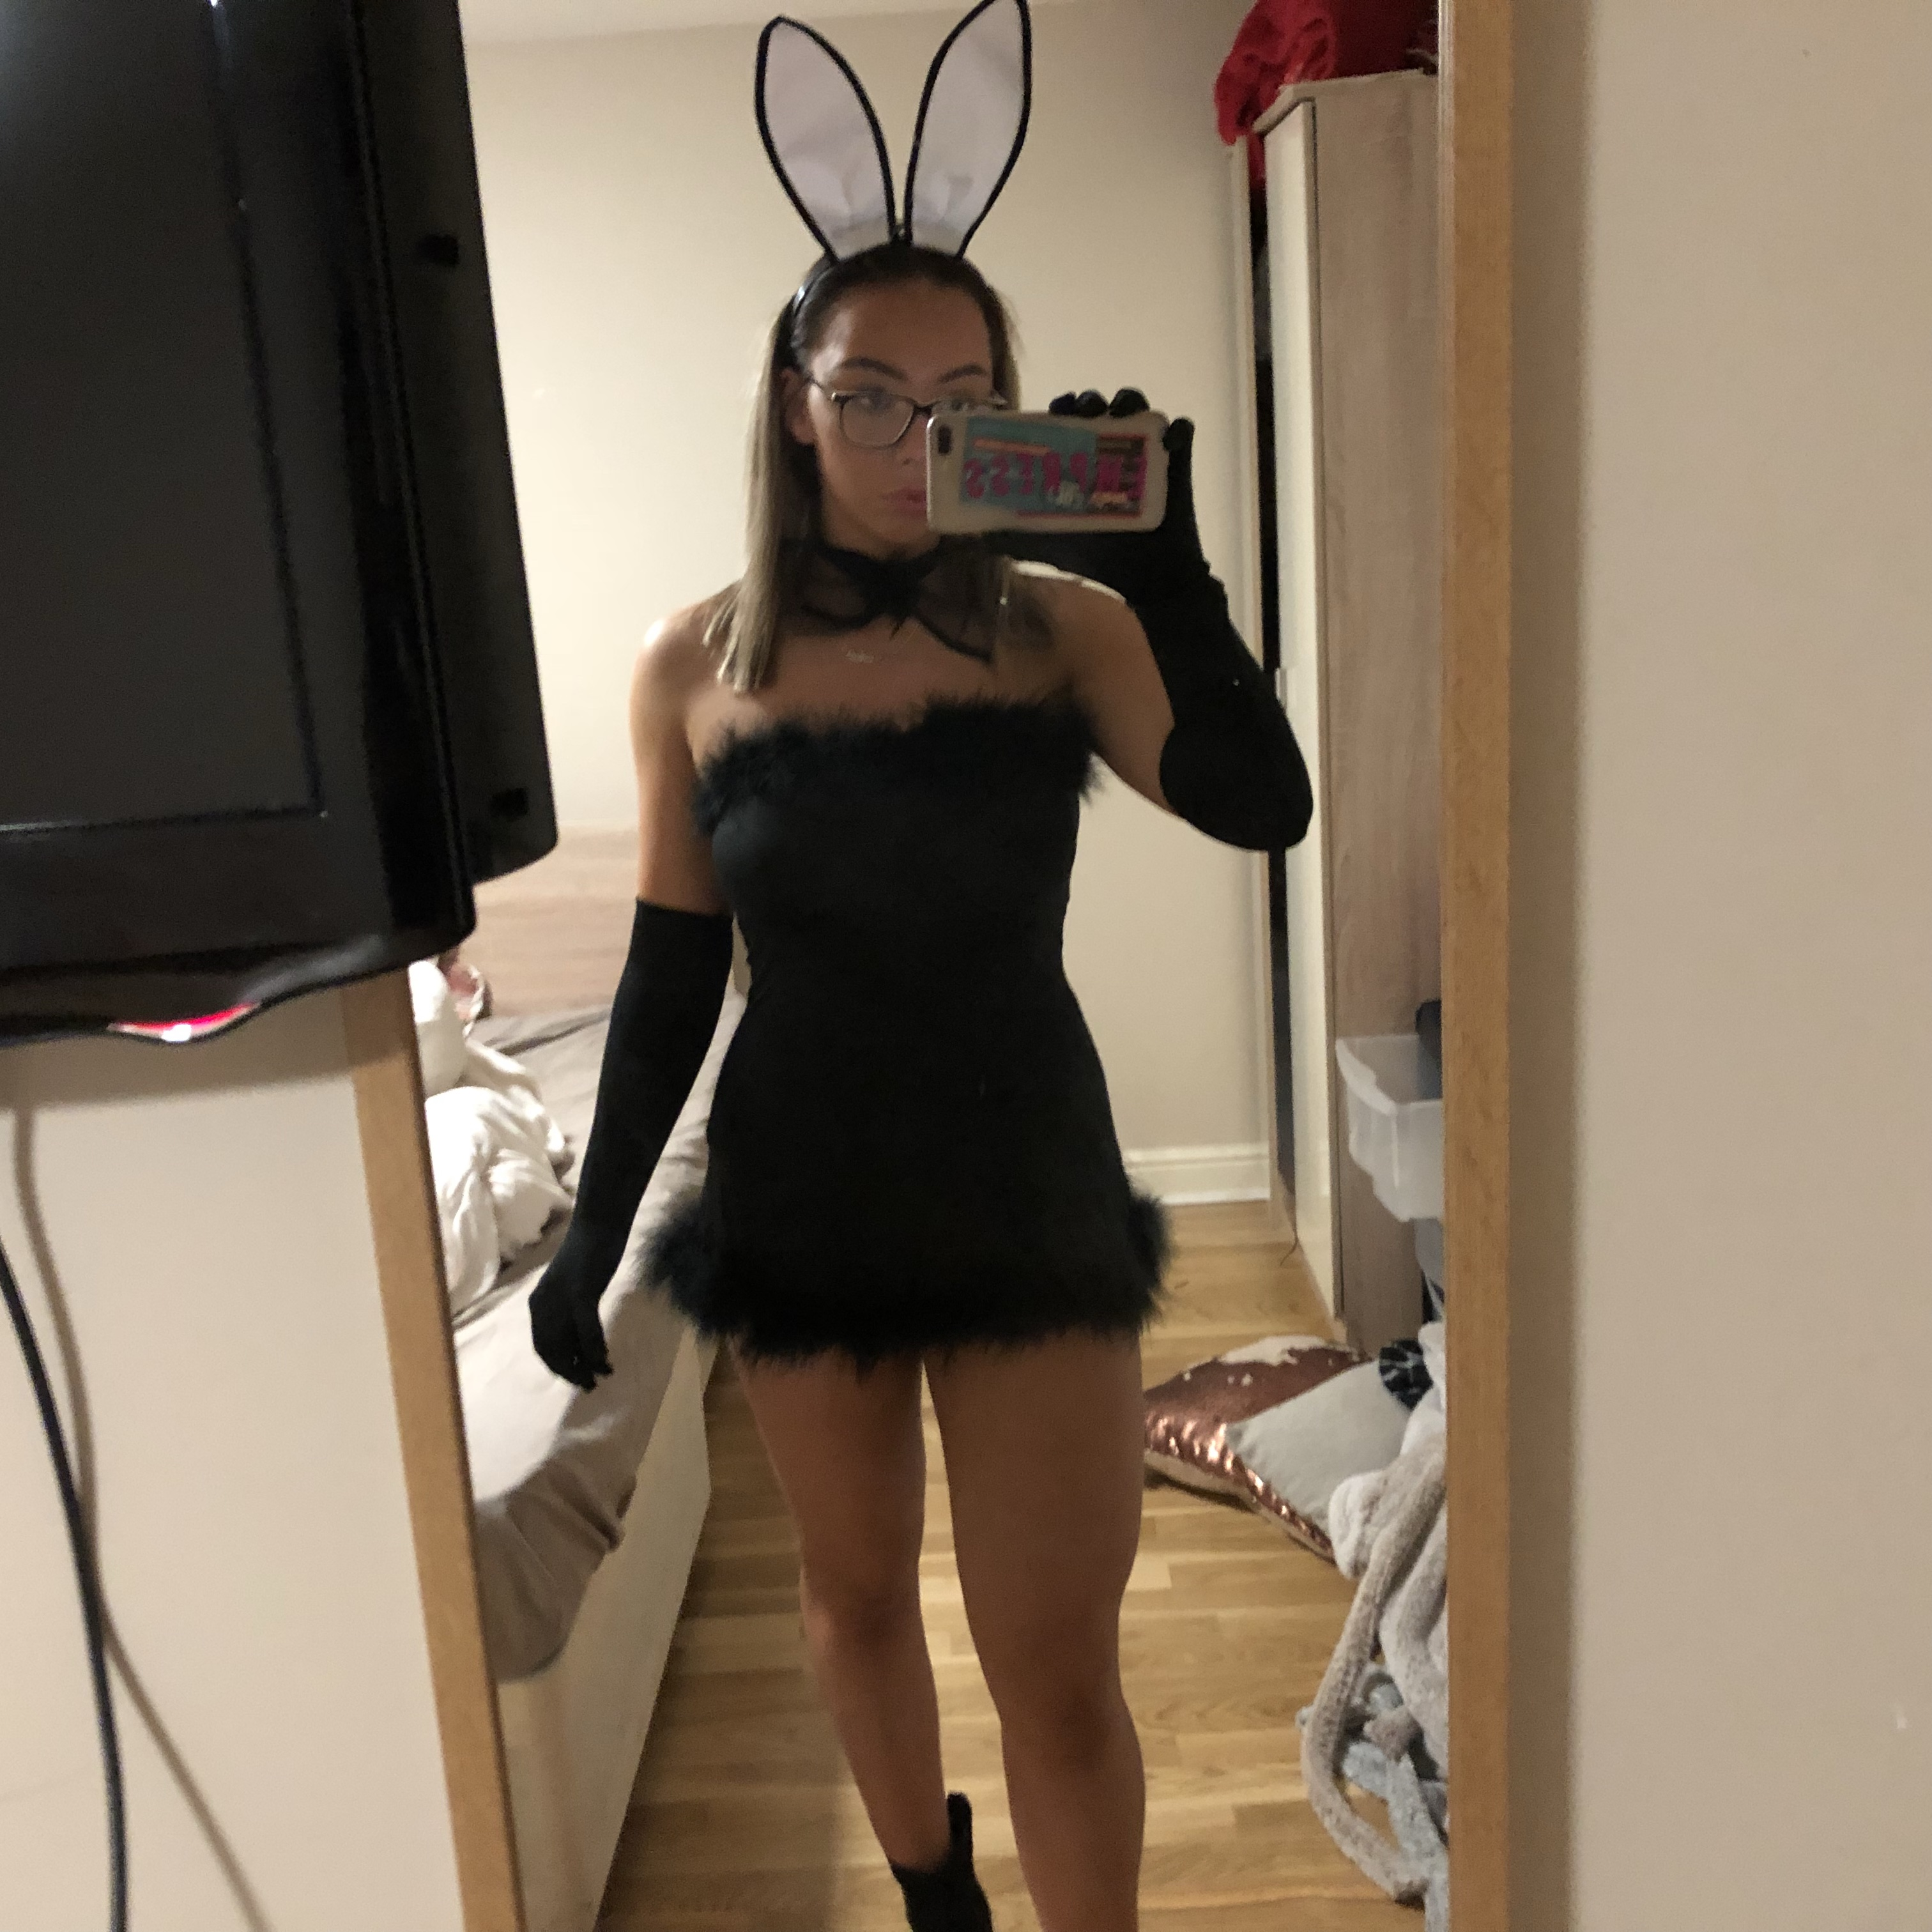 Sexy playboy bunny outfit